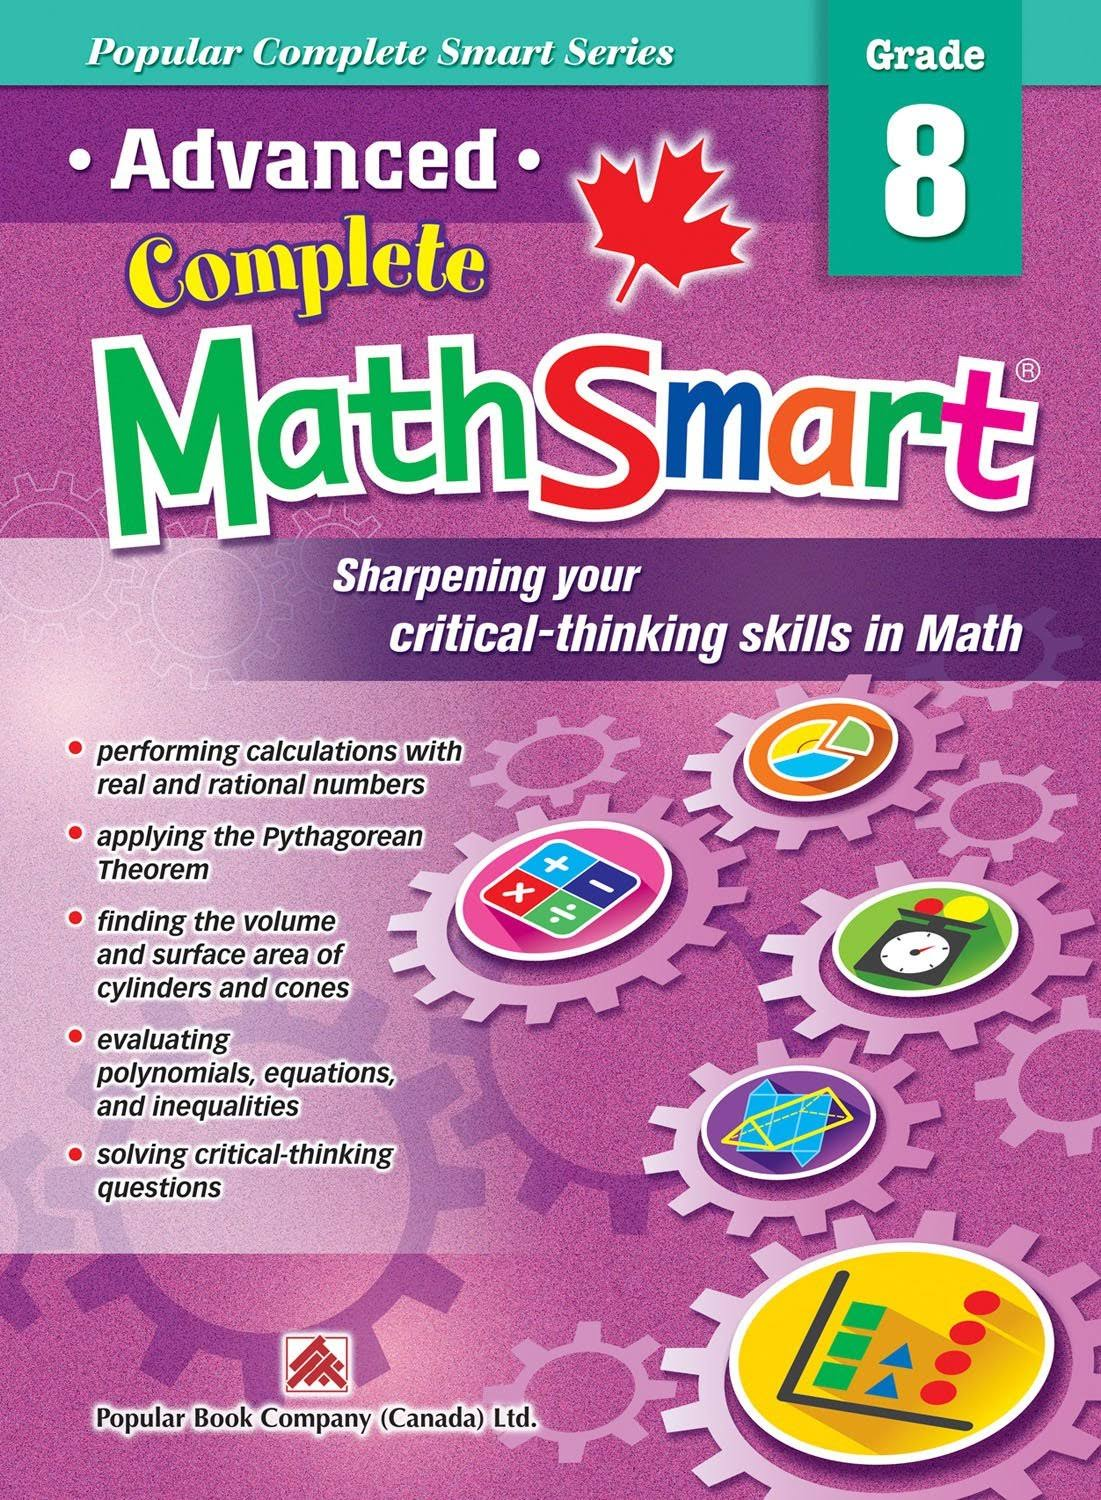 Popular Complete Smart Series: Advanced Complete MathSmart Grade 8 [Book]